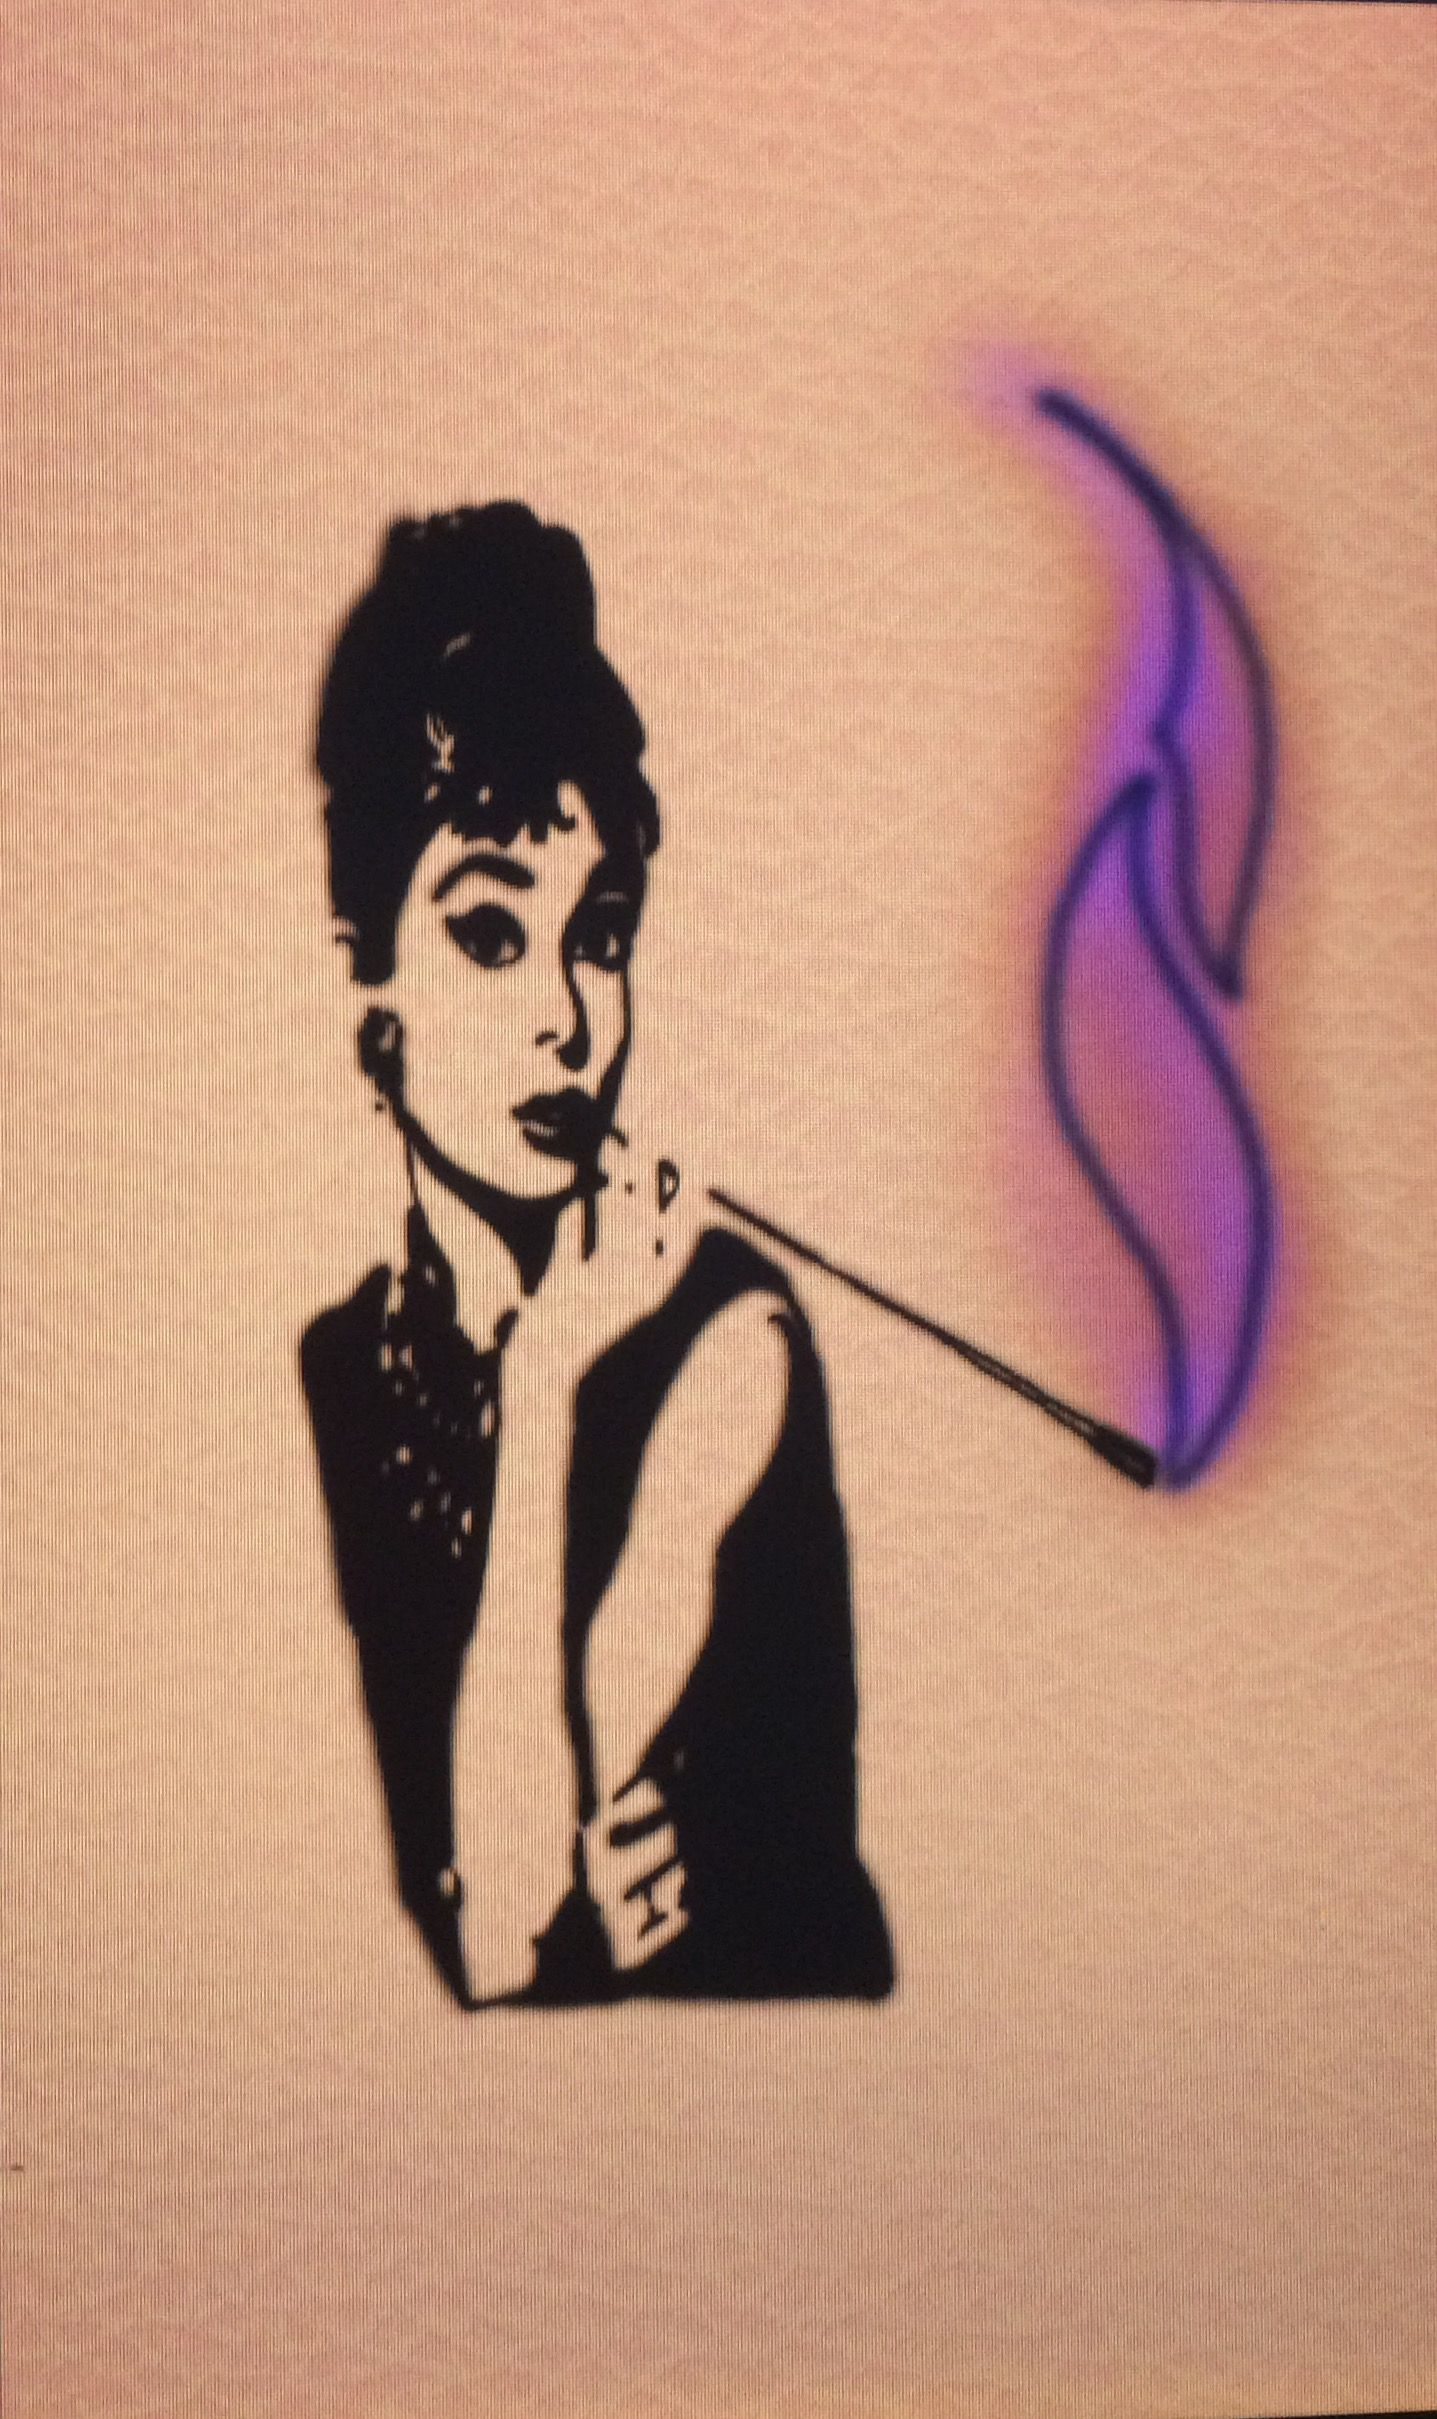 Tiffany Sutton Tattoo Artist: Audrey Hepburn: Breakfast At Tiffany's